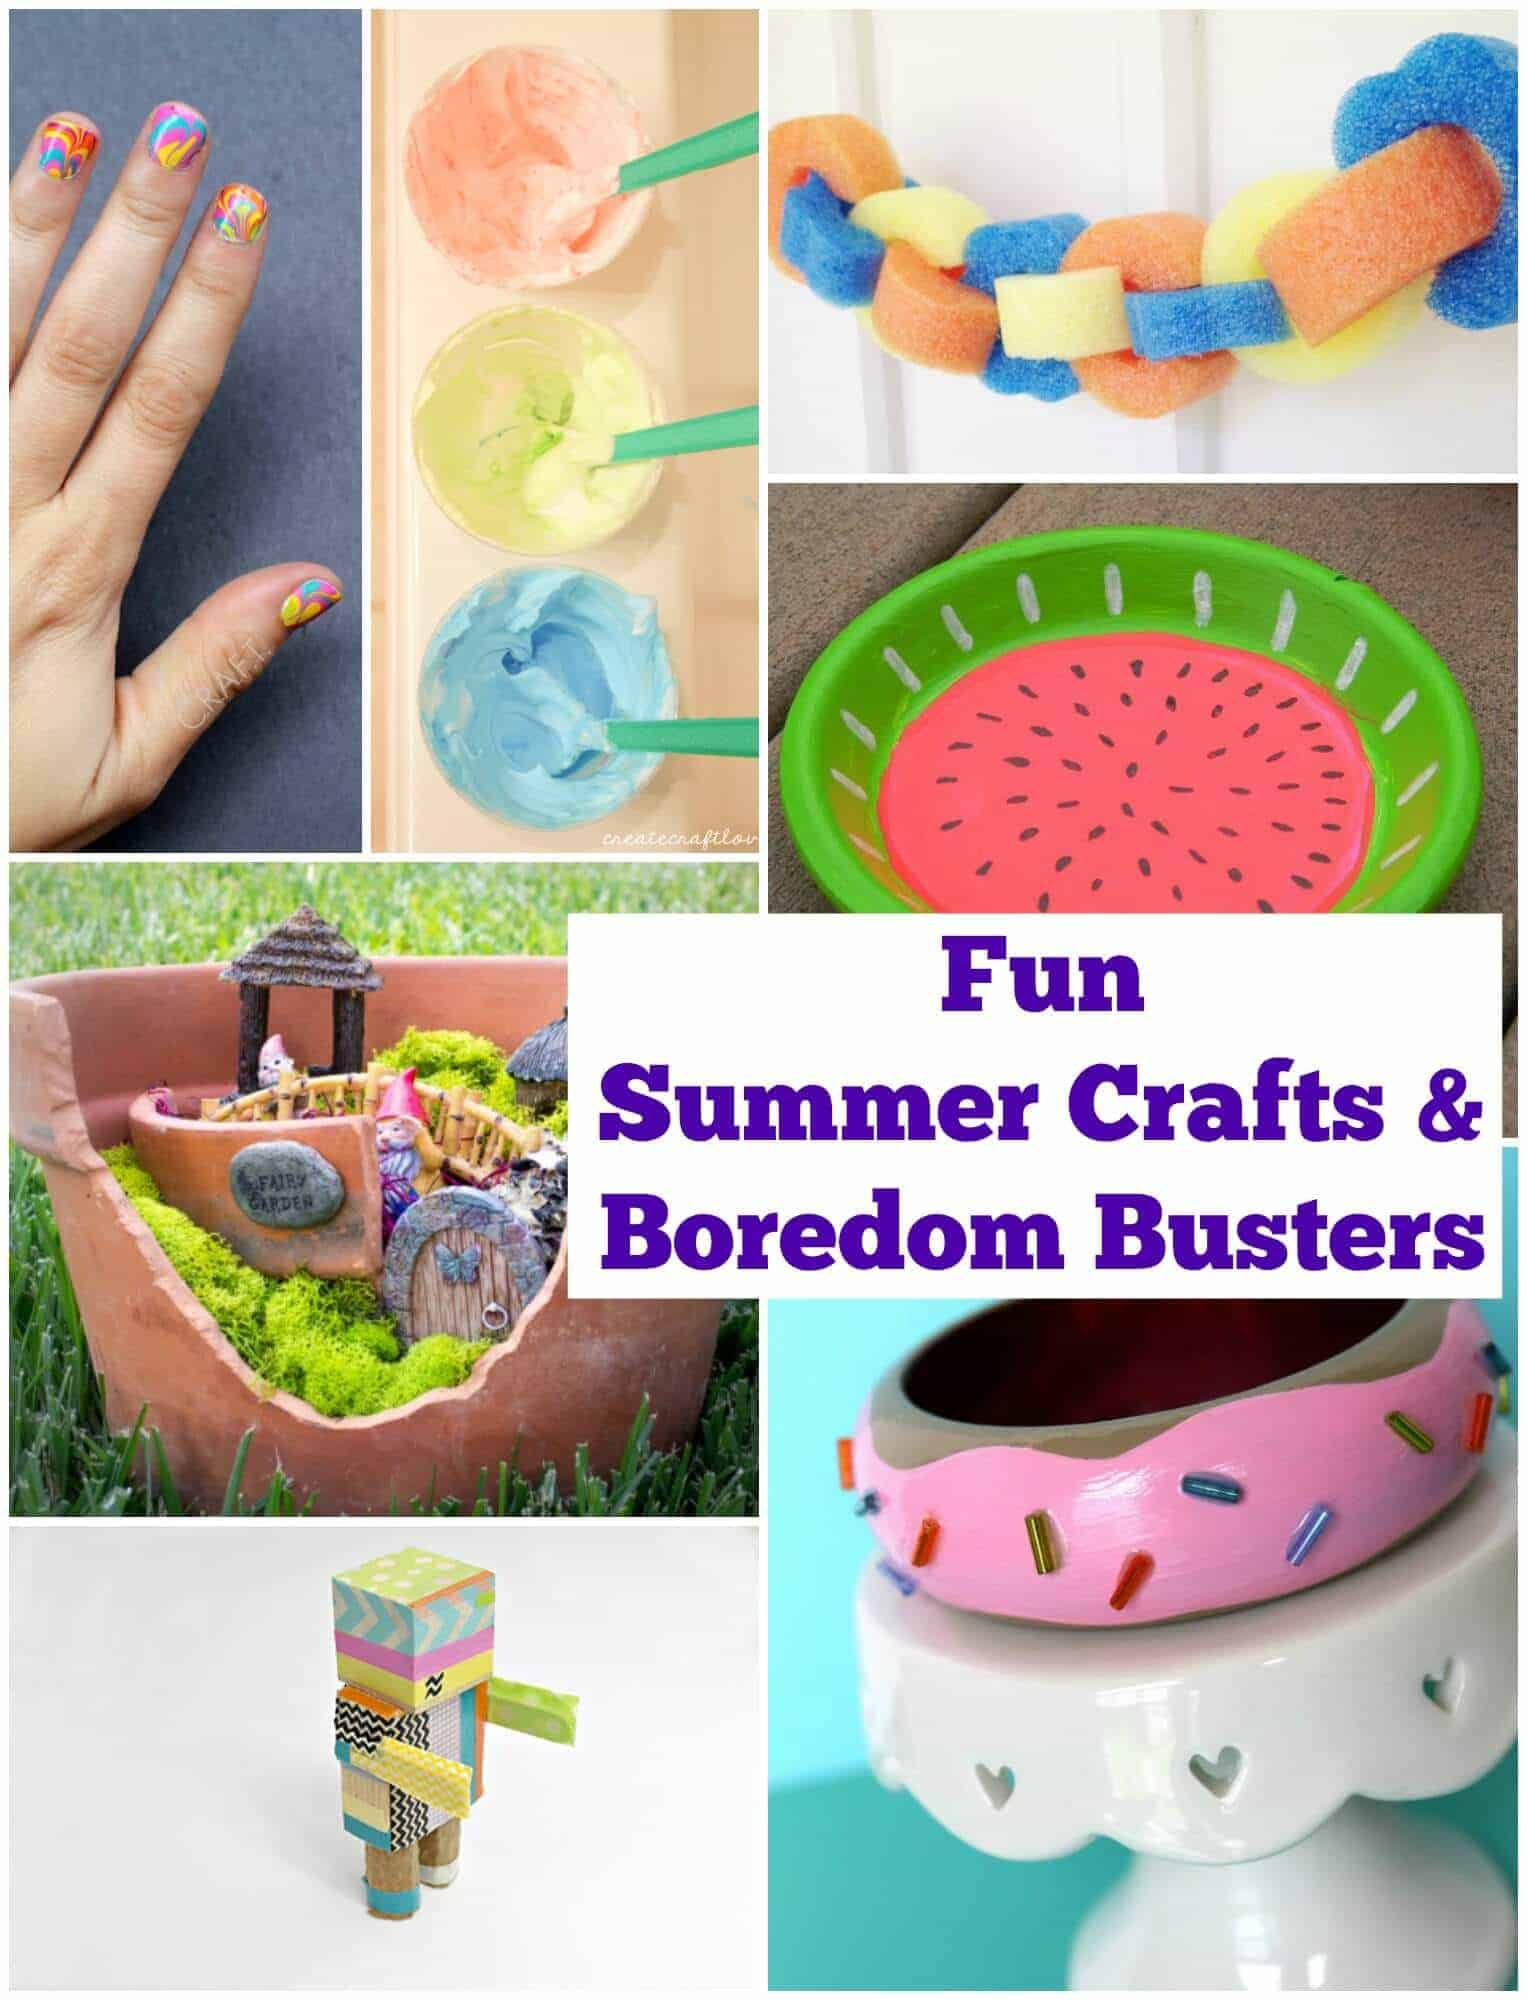 Fun Summer Craft Ideas For Kids Princess Pinky Girl